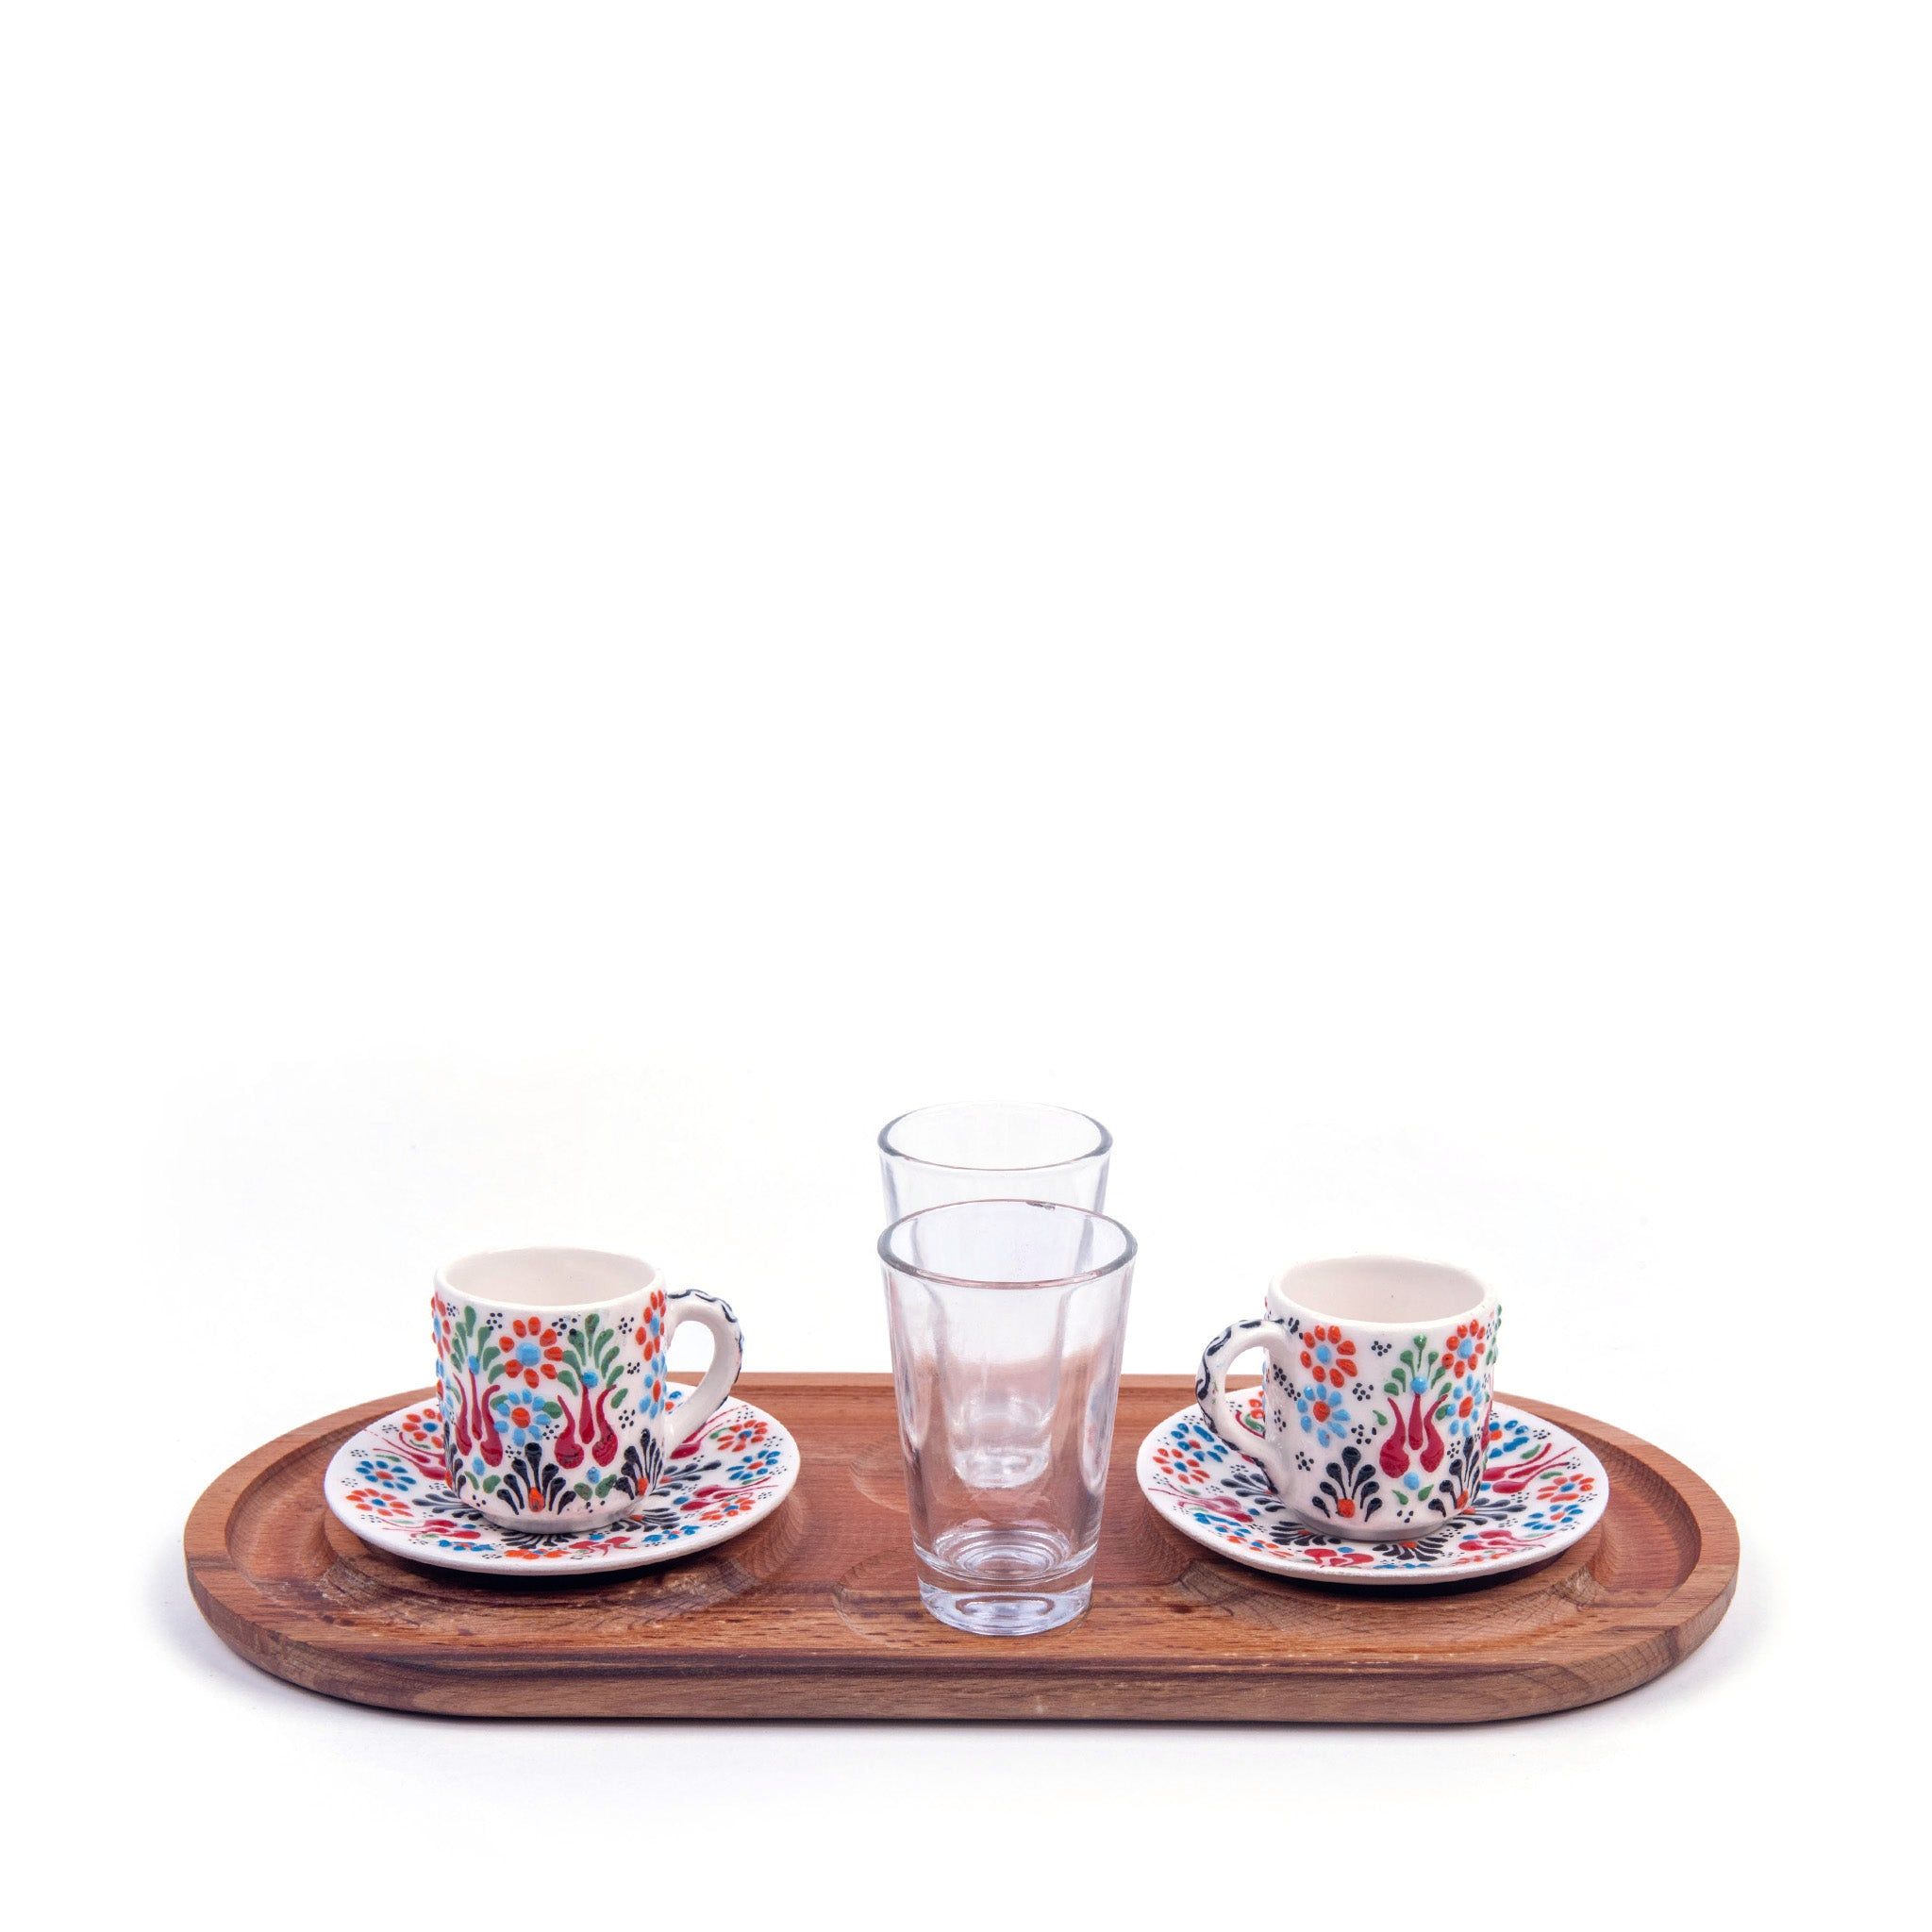 Turkish Ceramic Iznik Design Handmade Coffee Set Of Two With Tray - White